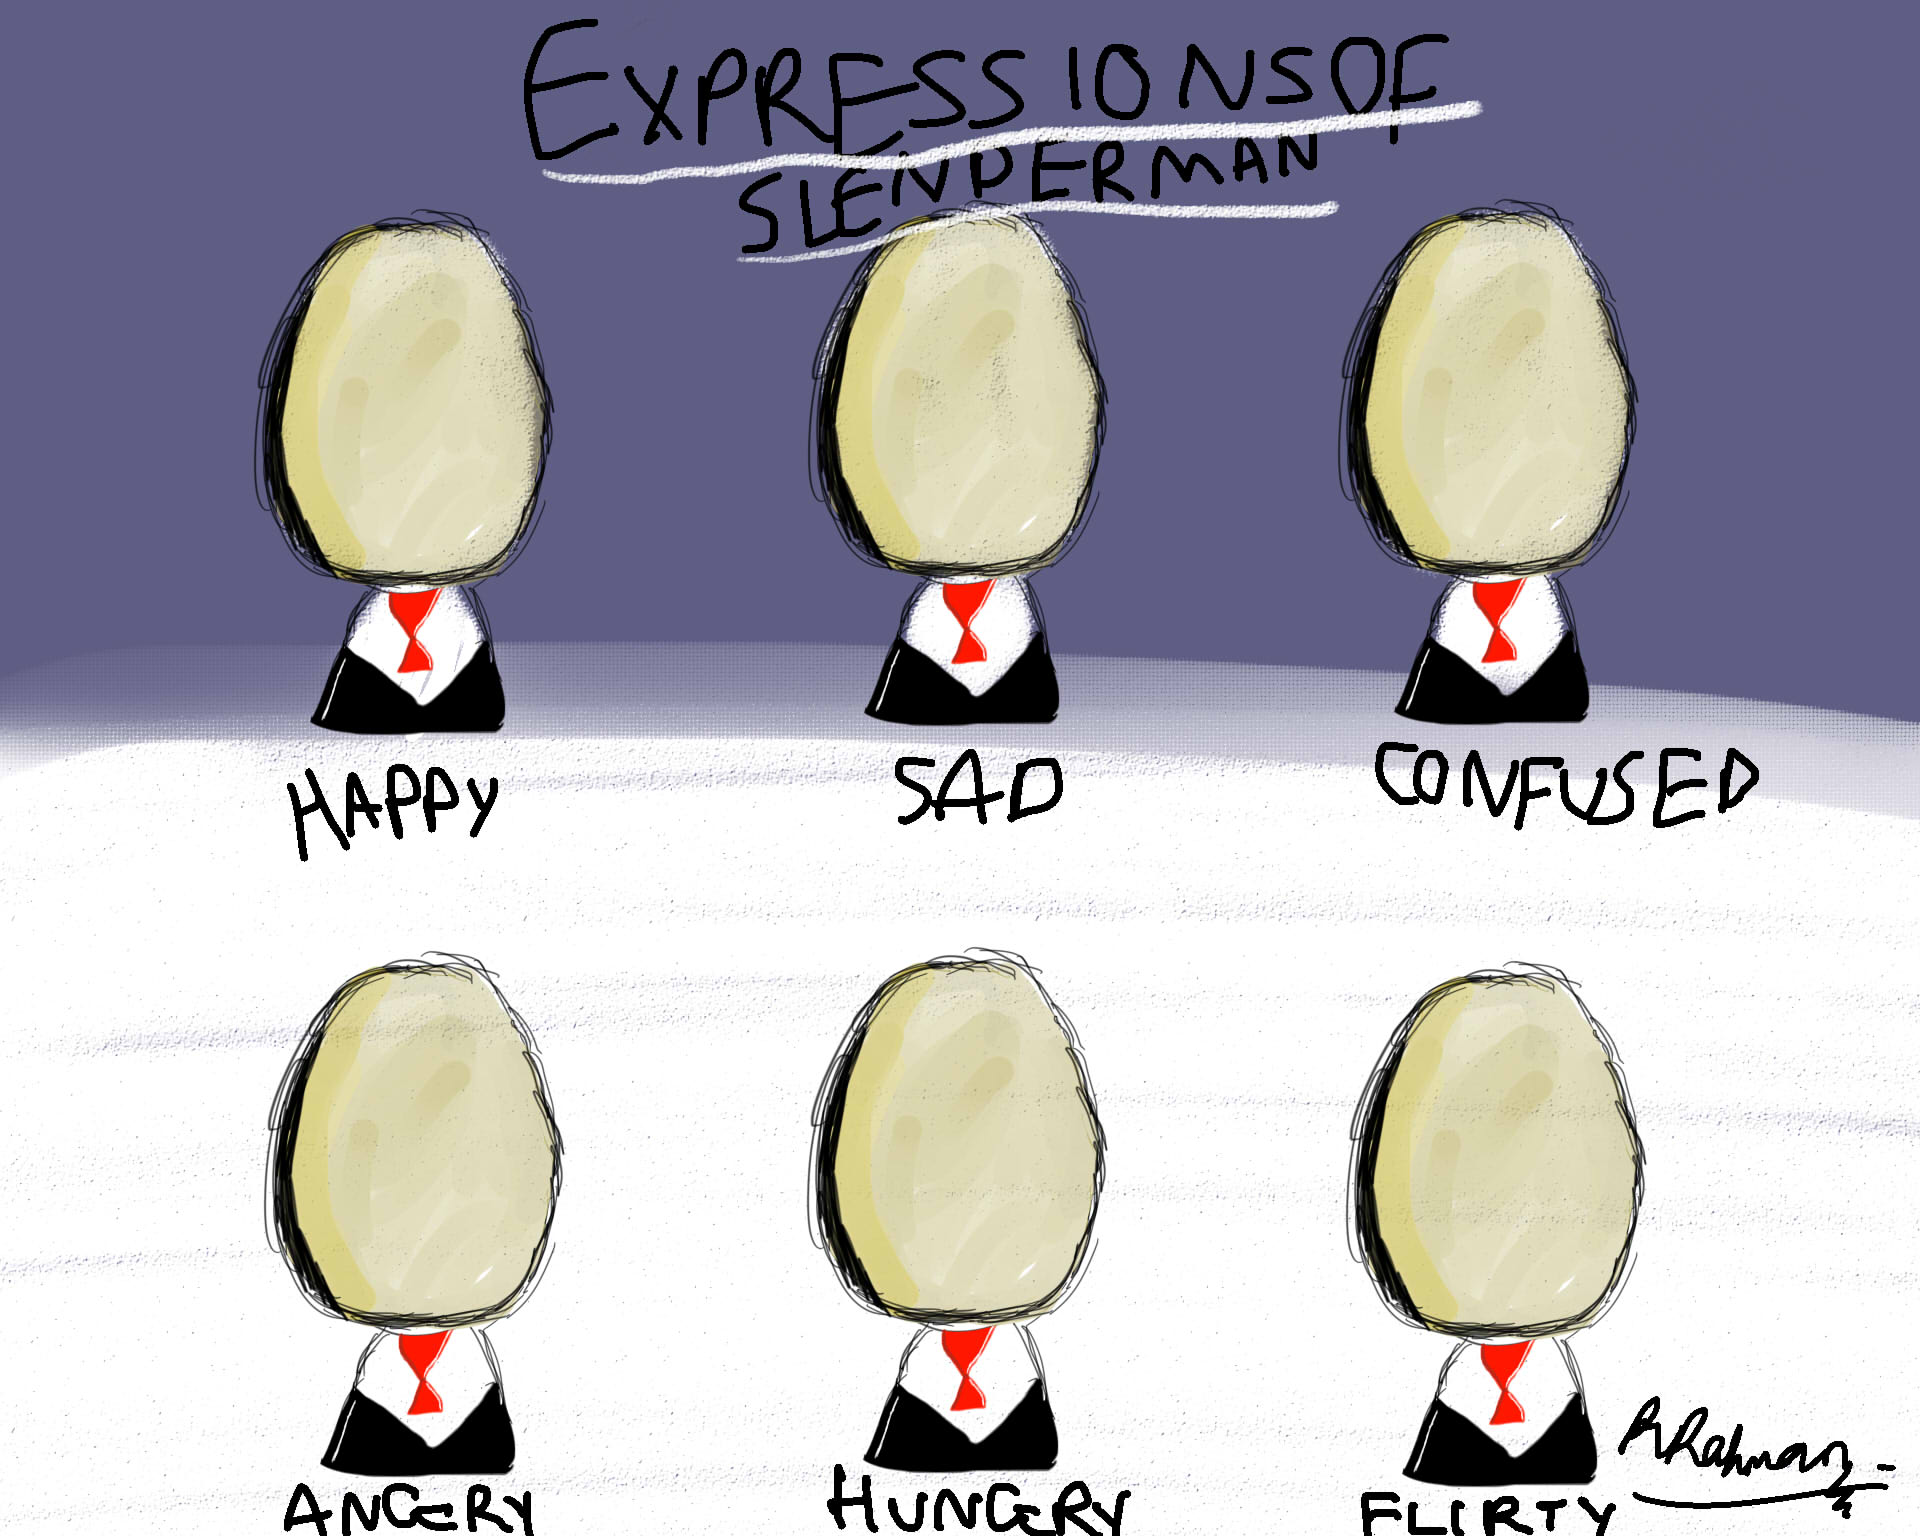 Expressions of Slenderman